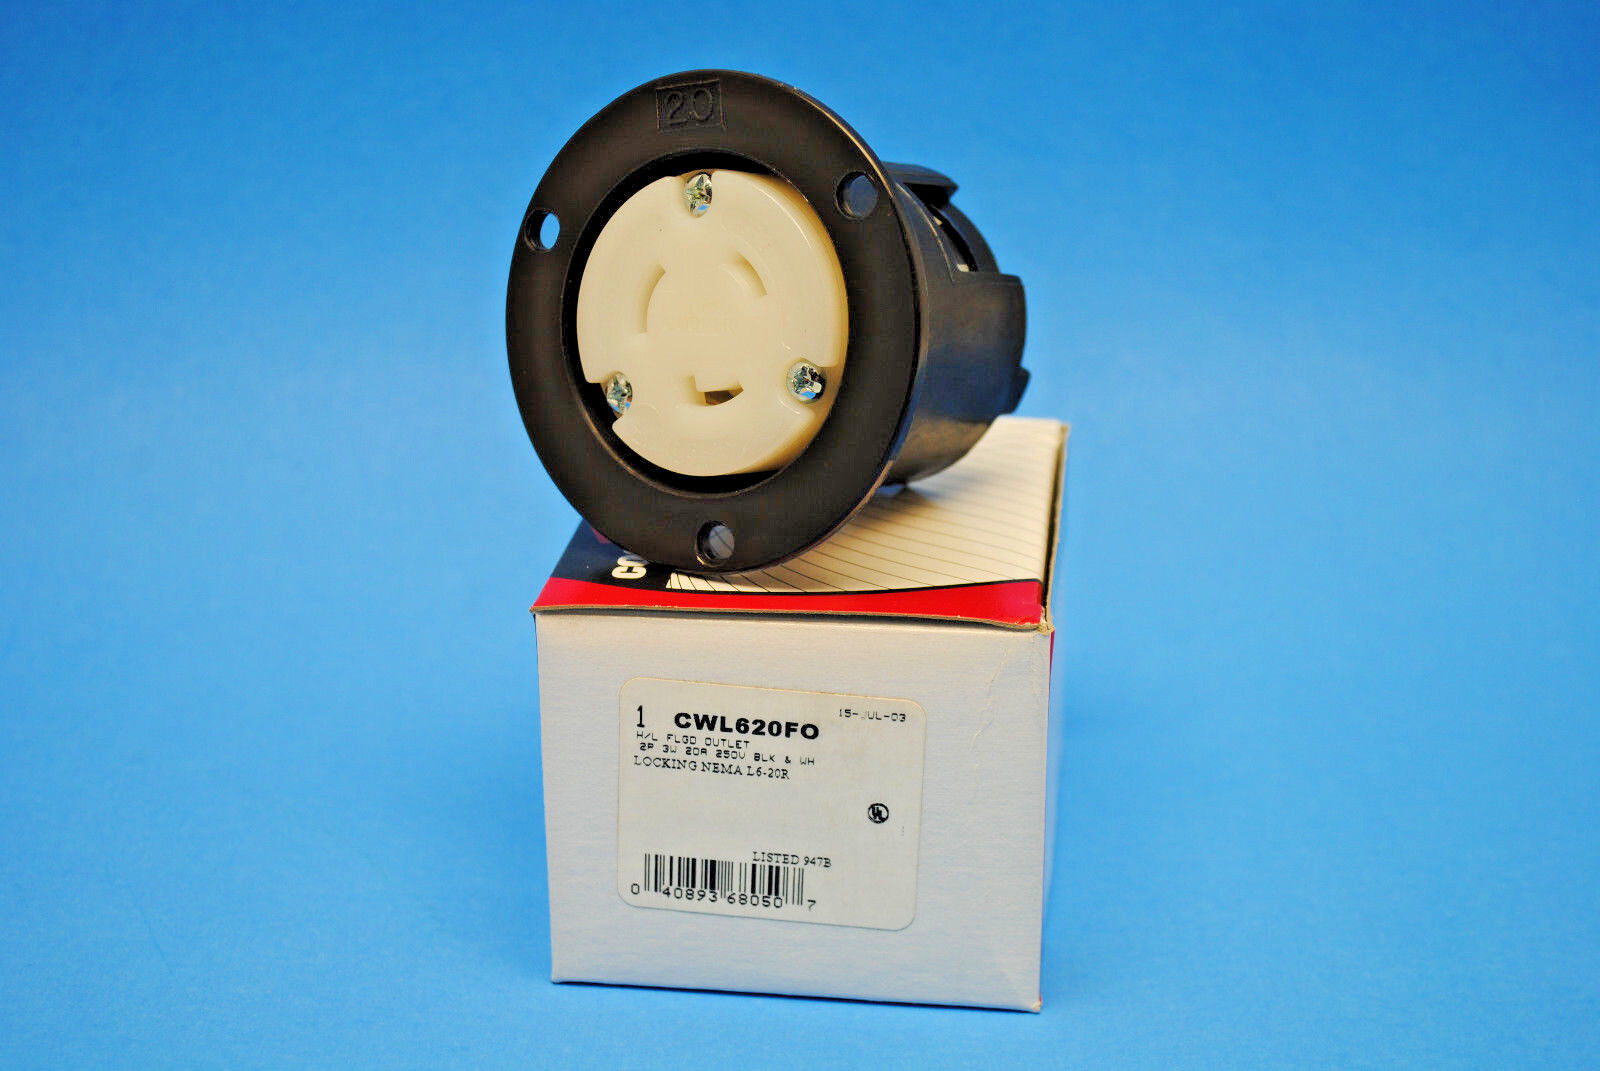 NEMA L7-20 20A 277V 2 Pole 3 Wire Grounding Flanged Outlet Receptacle